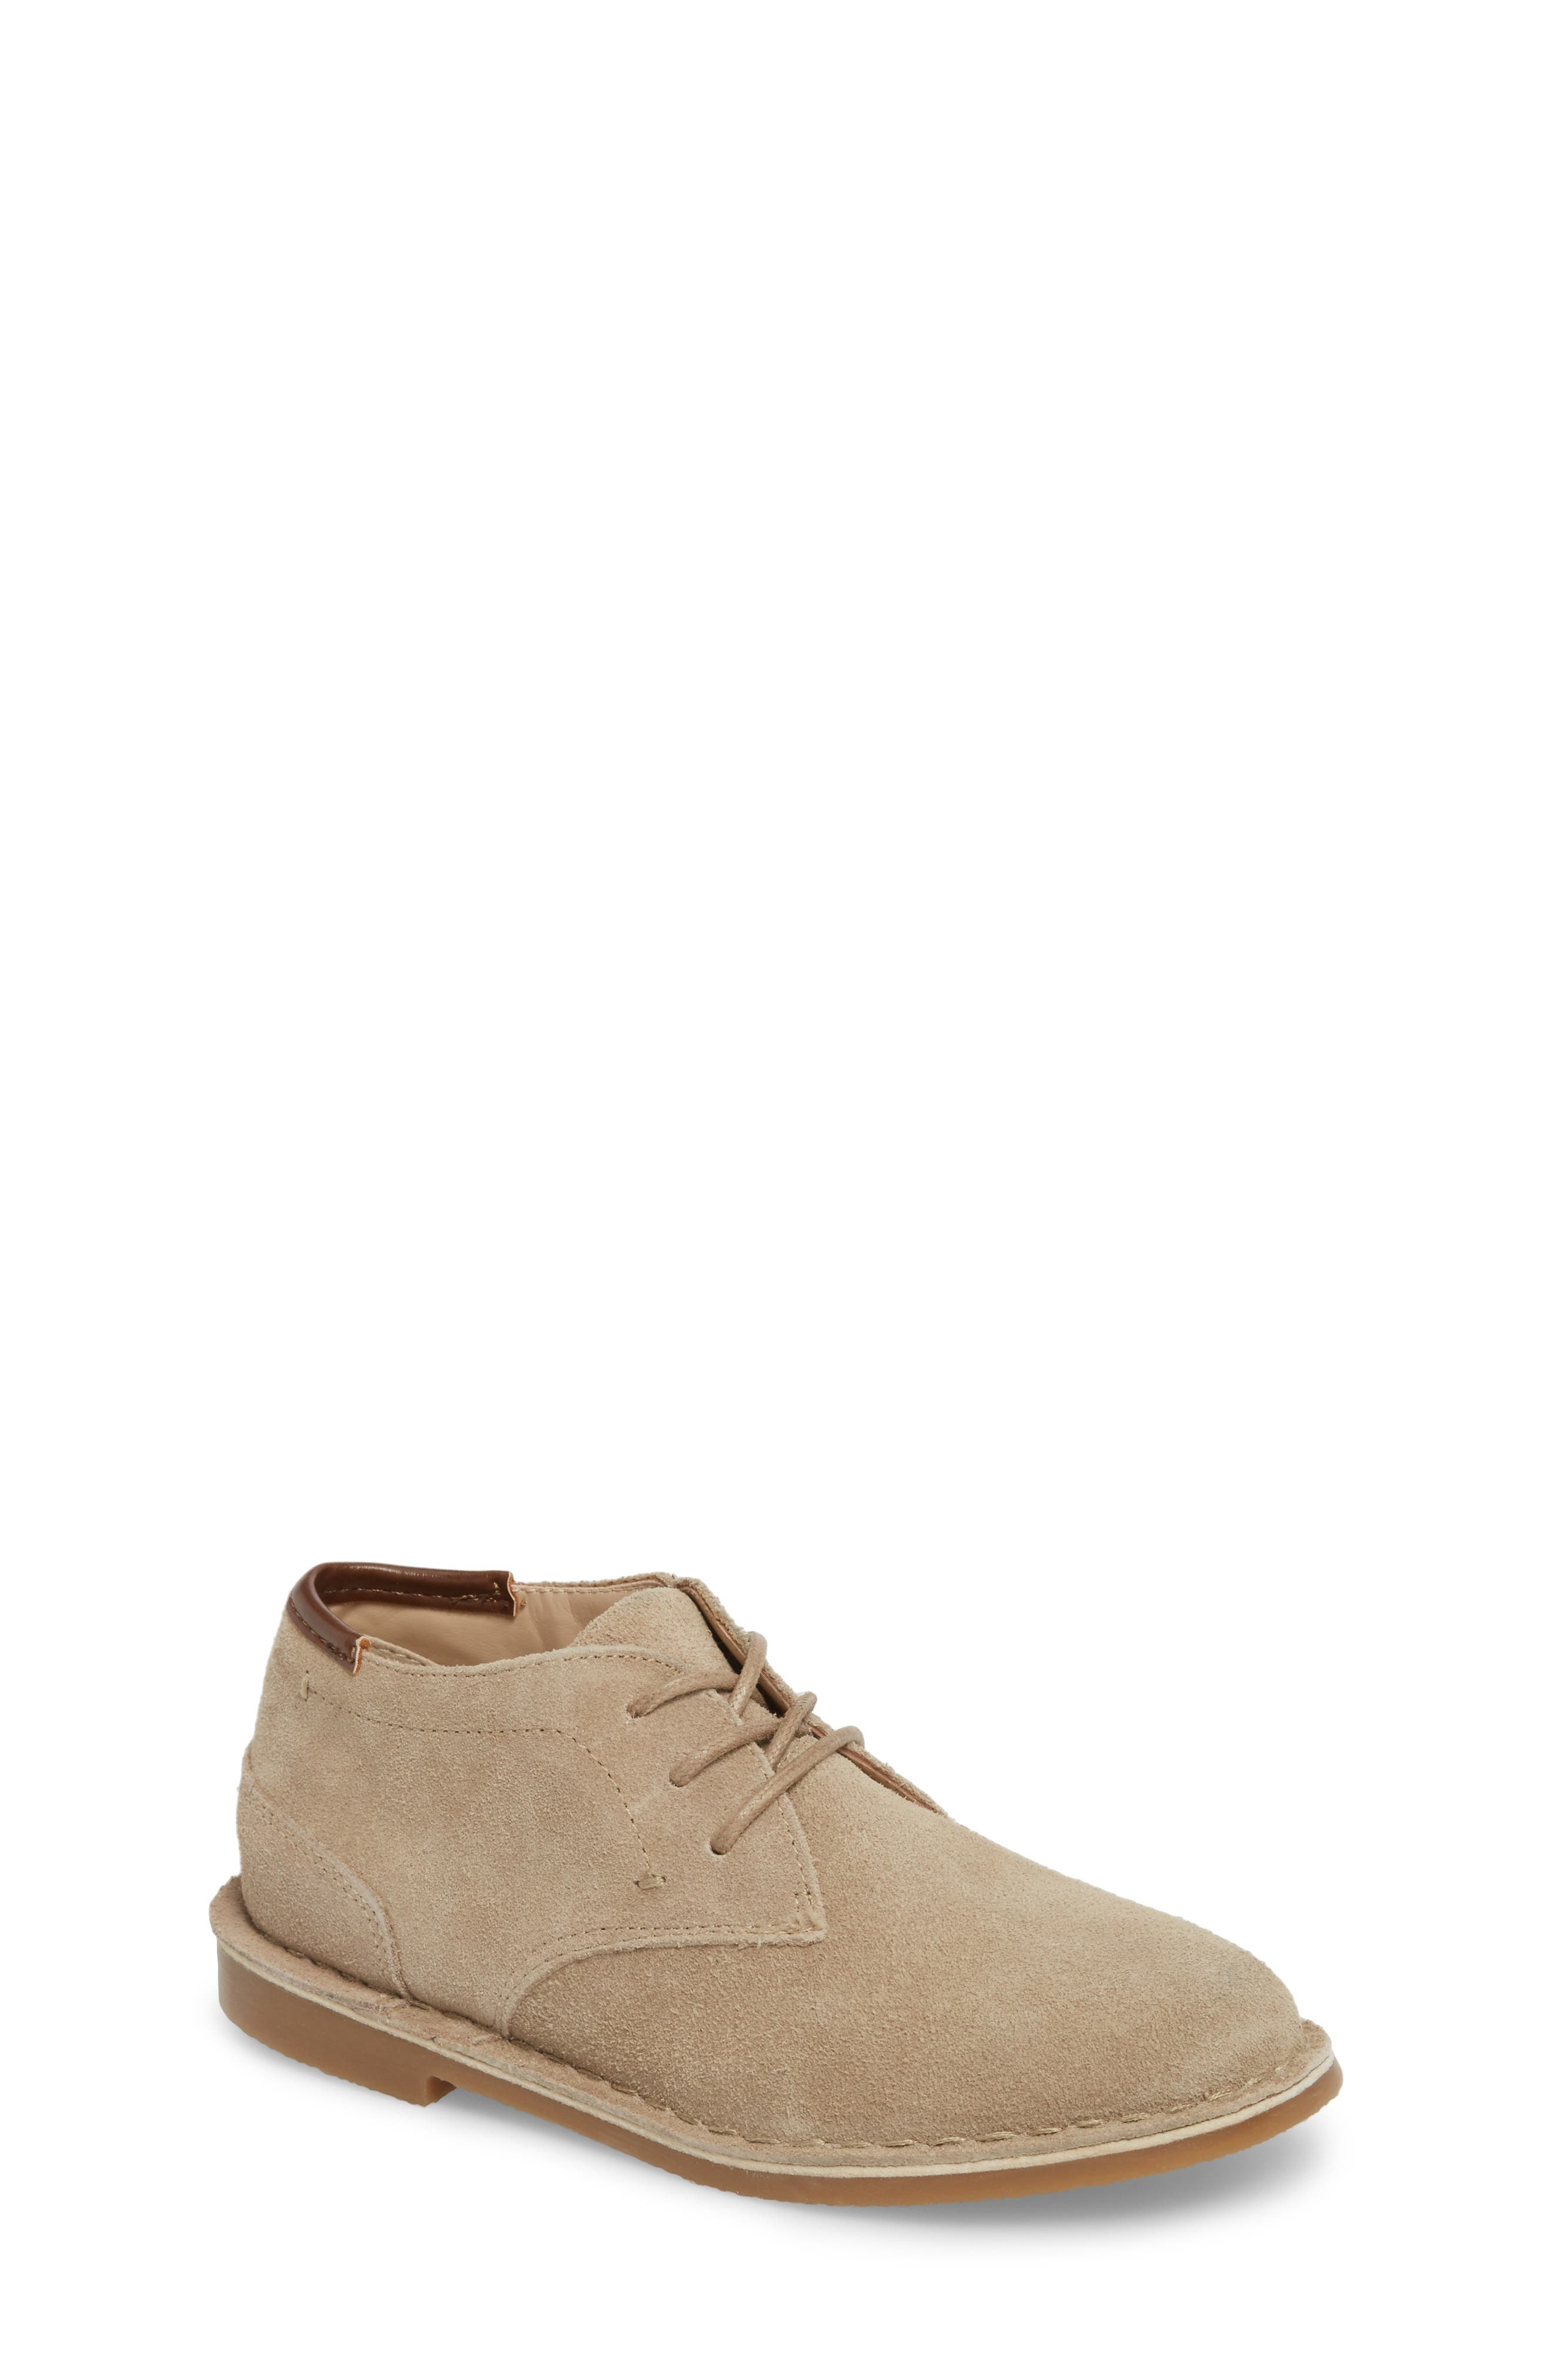 Main Image - Kenneth Cole New York Real Deal Chukka Boot (Walker, Toddler, Little Kid & Big Kid)